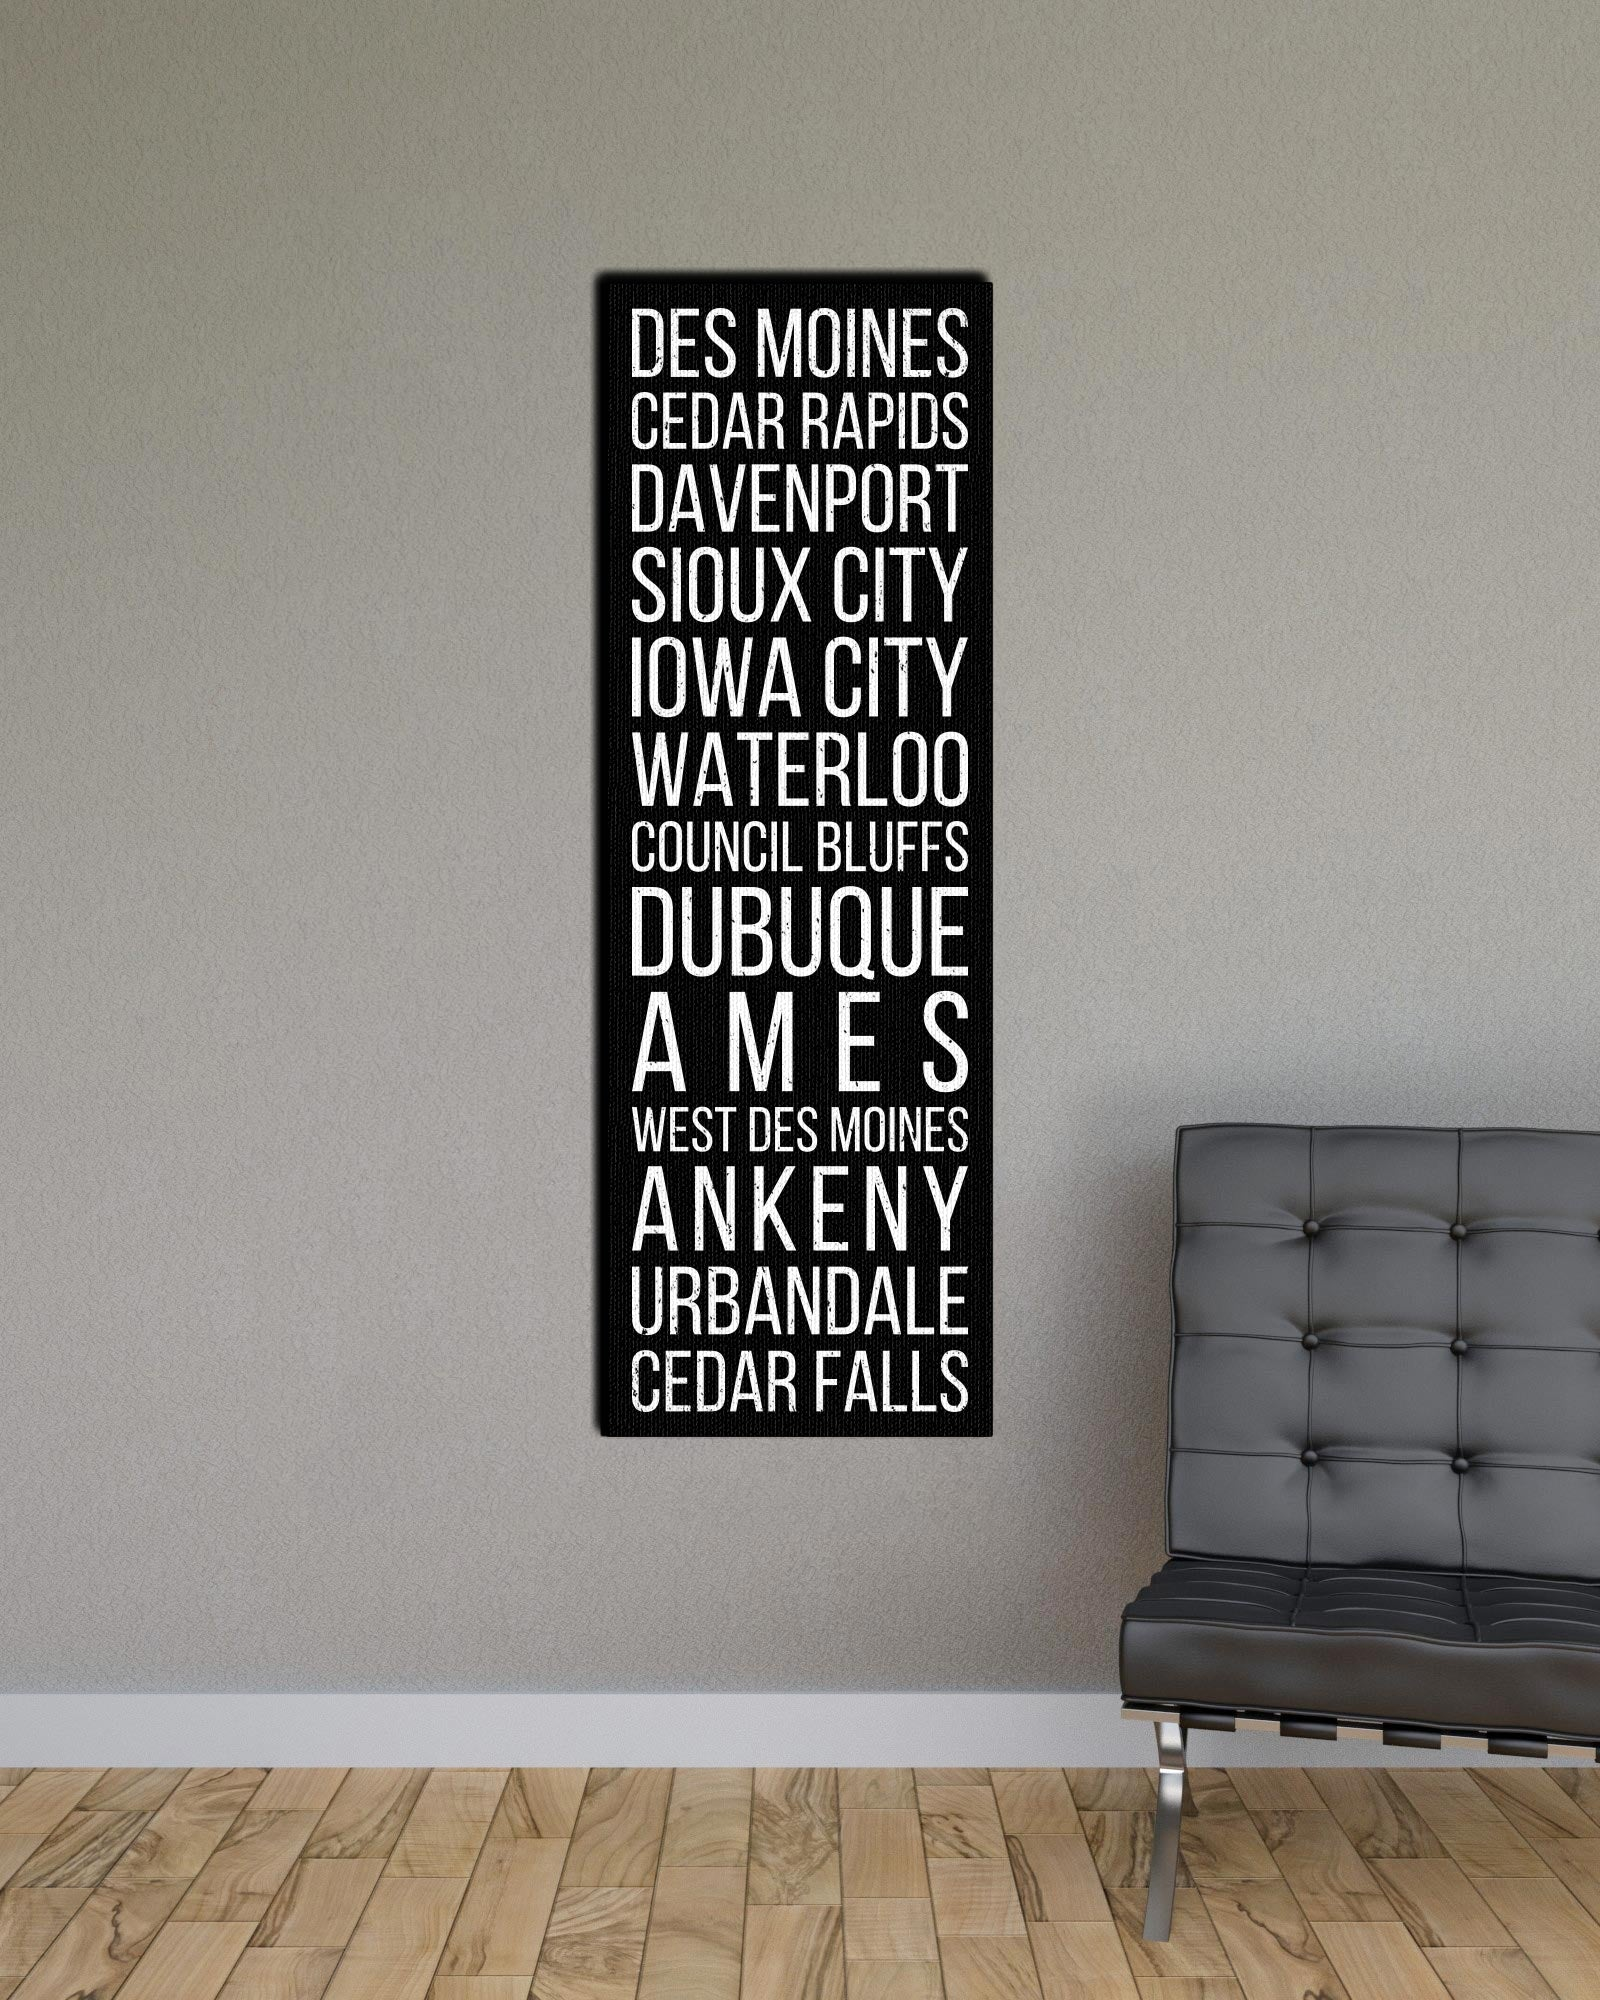 Iowa Des Moines Cedar Rapids Davenport Bus Scroll Subway Print